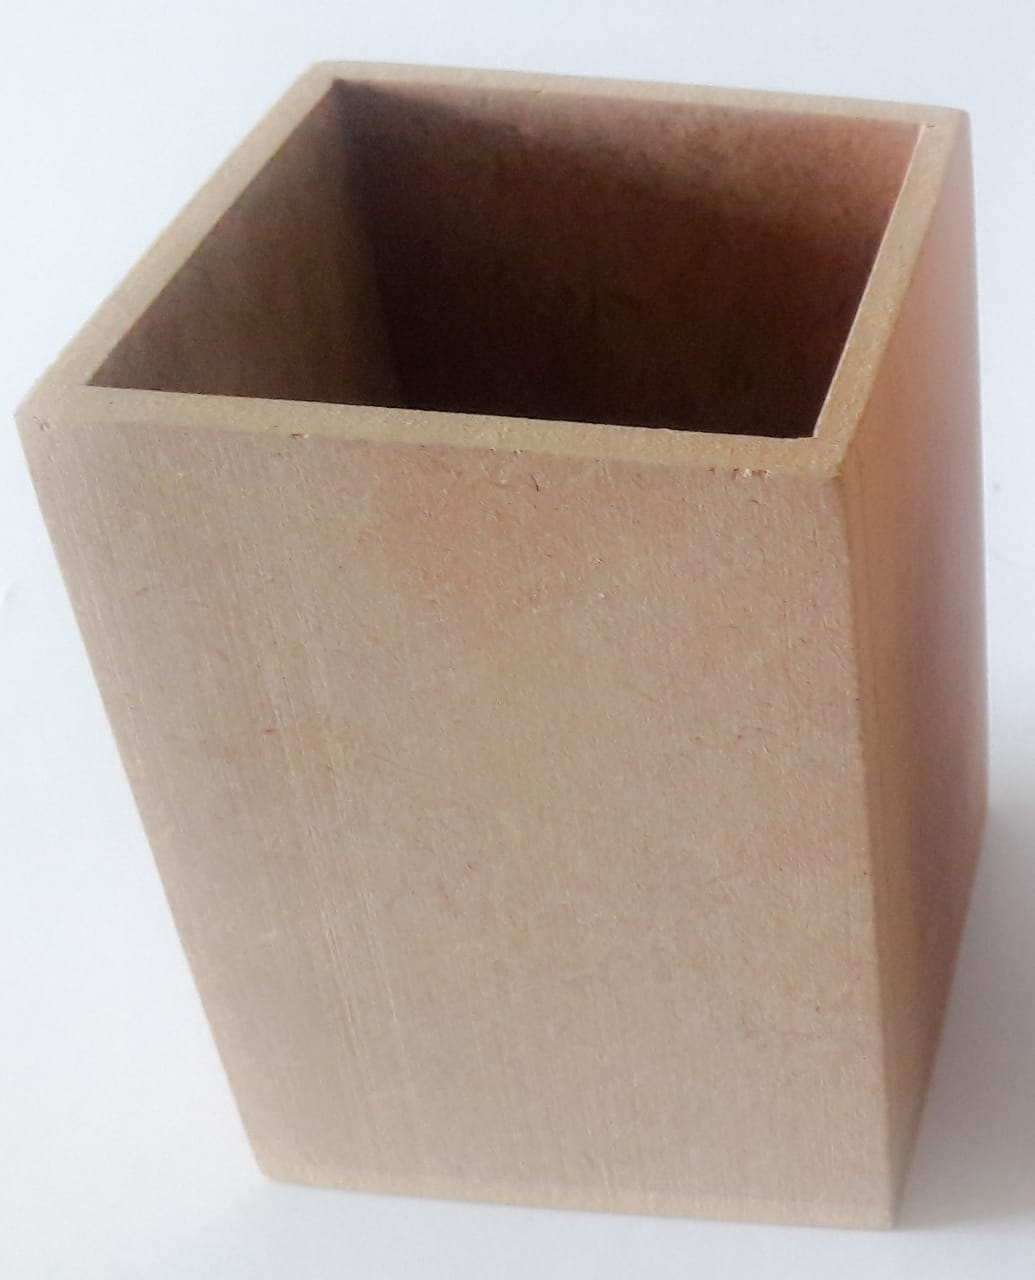 DIY MDF pen holder